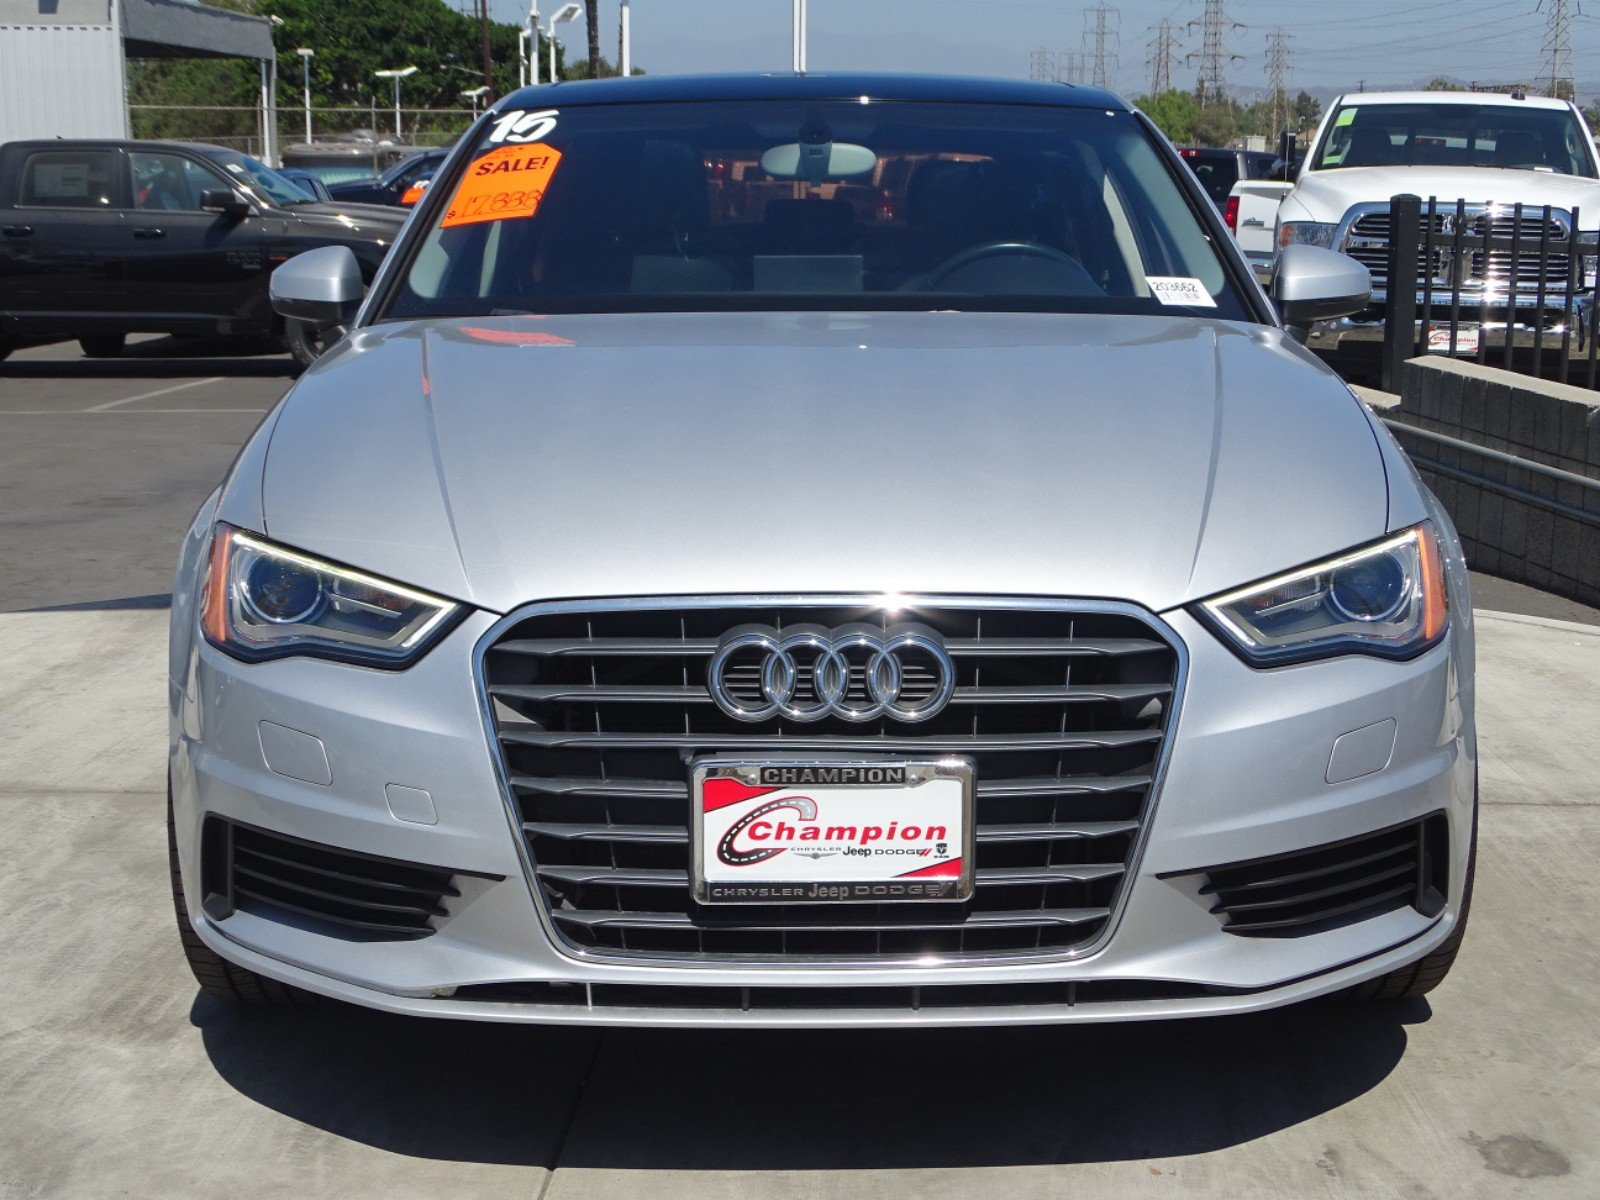 Pre Owned 2015 Audi A3 1 8T Premium 4dr Car in Downey